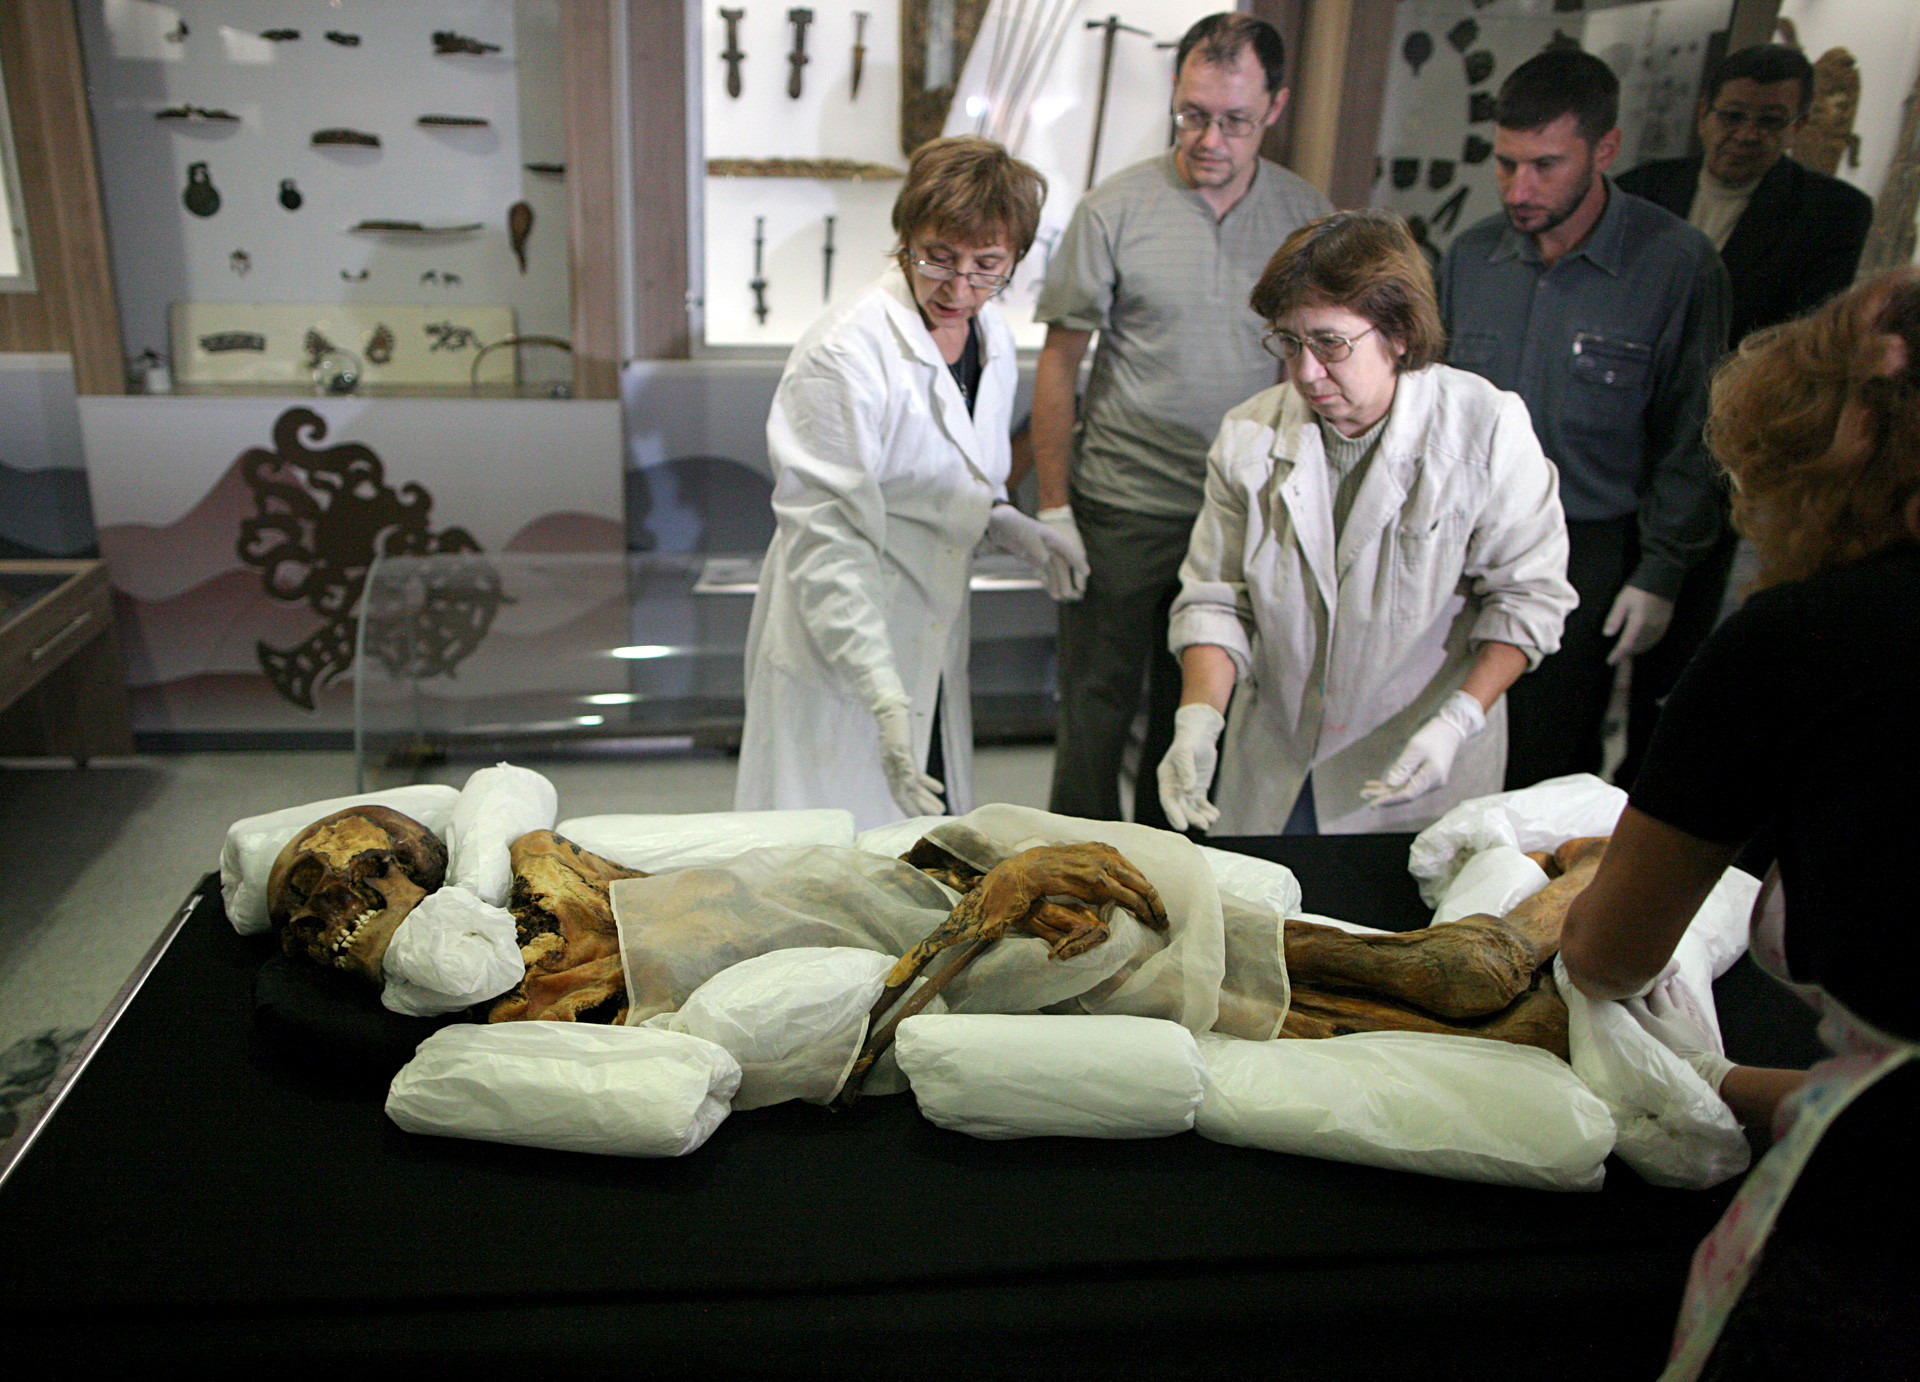 The staff of the Museum of Archeology and Ethnography of the Russian Academy of Sciences Siberian Branch pack the mummy of Princess of Ukok for delivery to the A.V. Anokhin National Museum in the Republic of Altai.